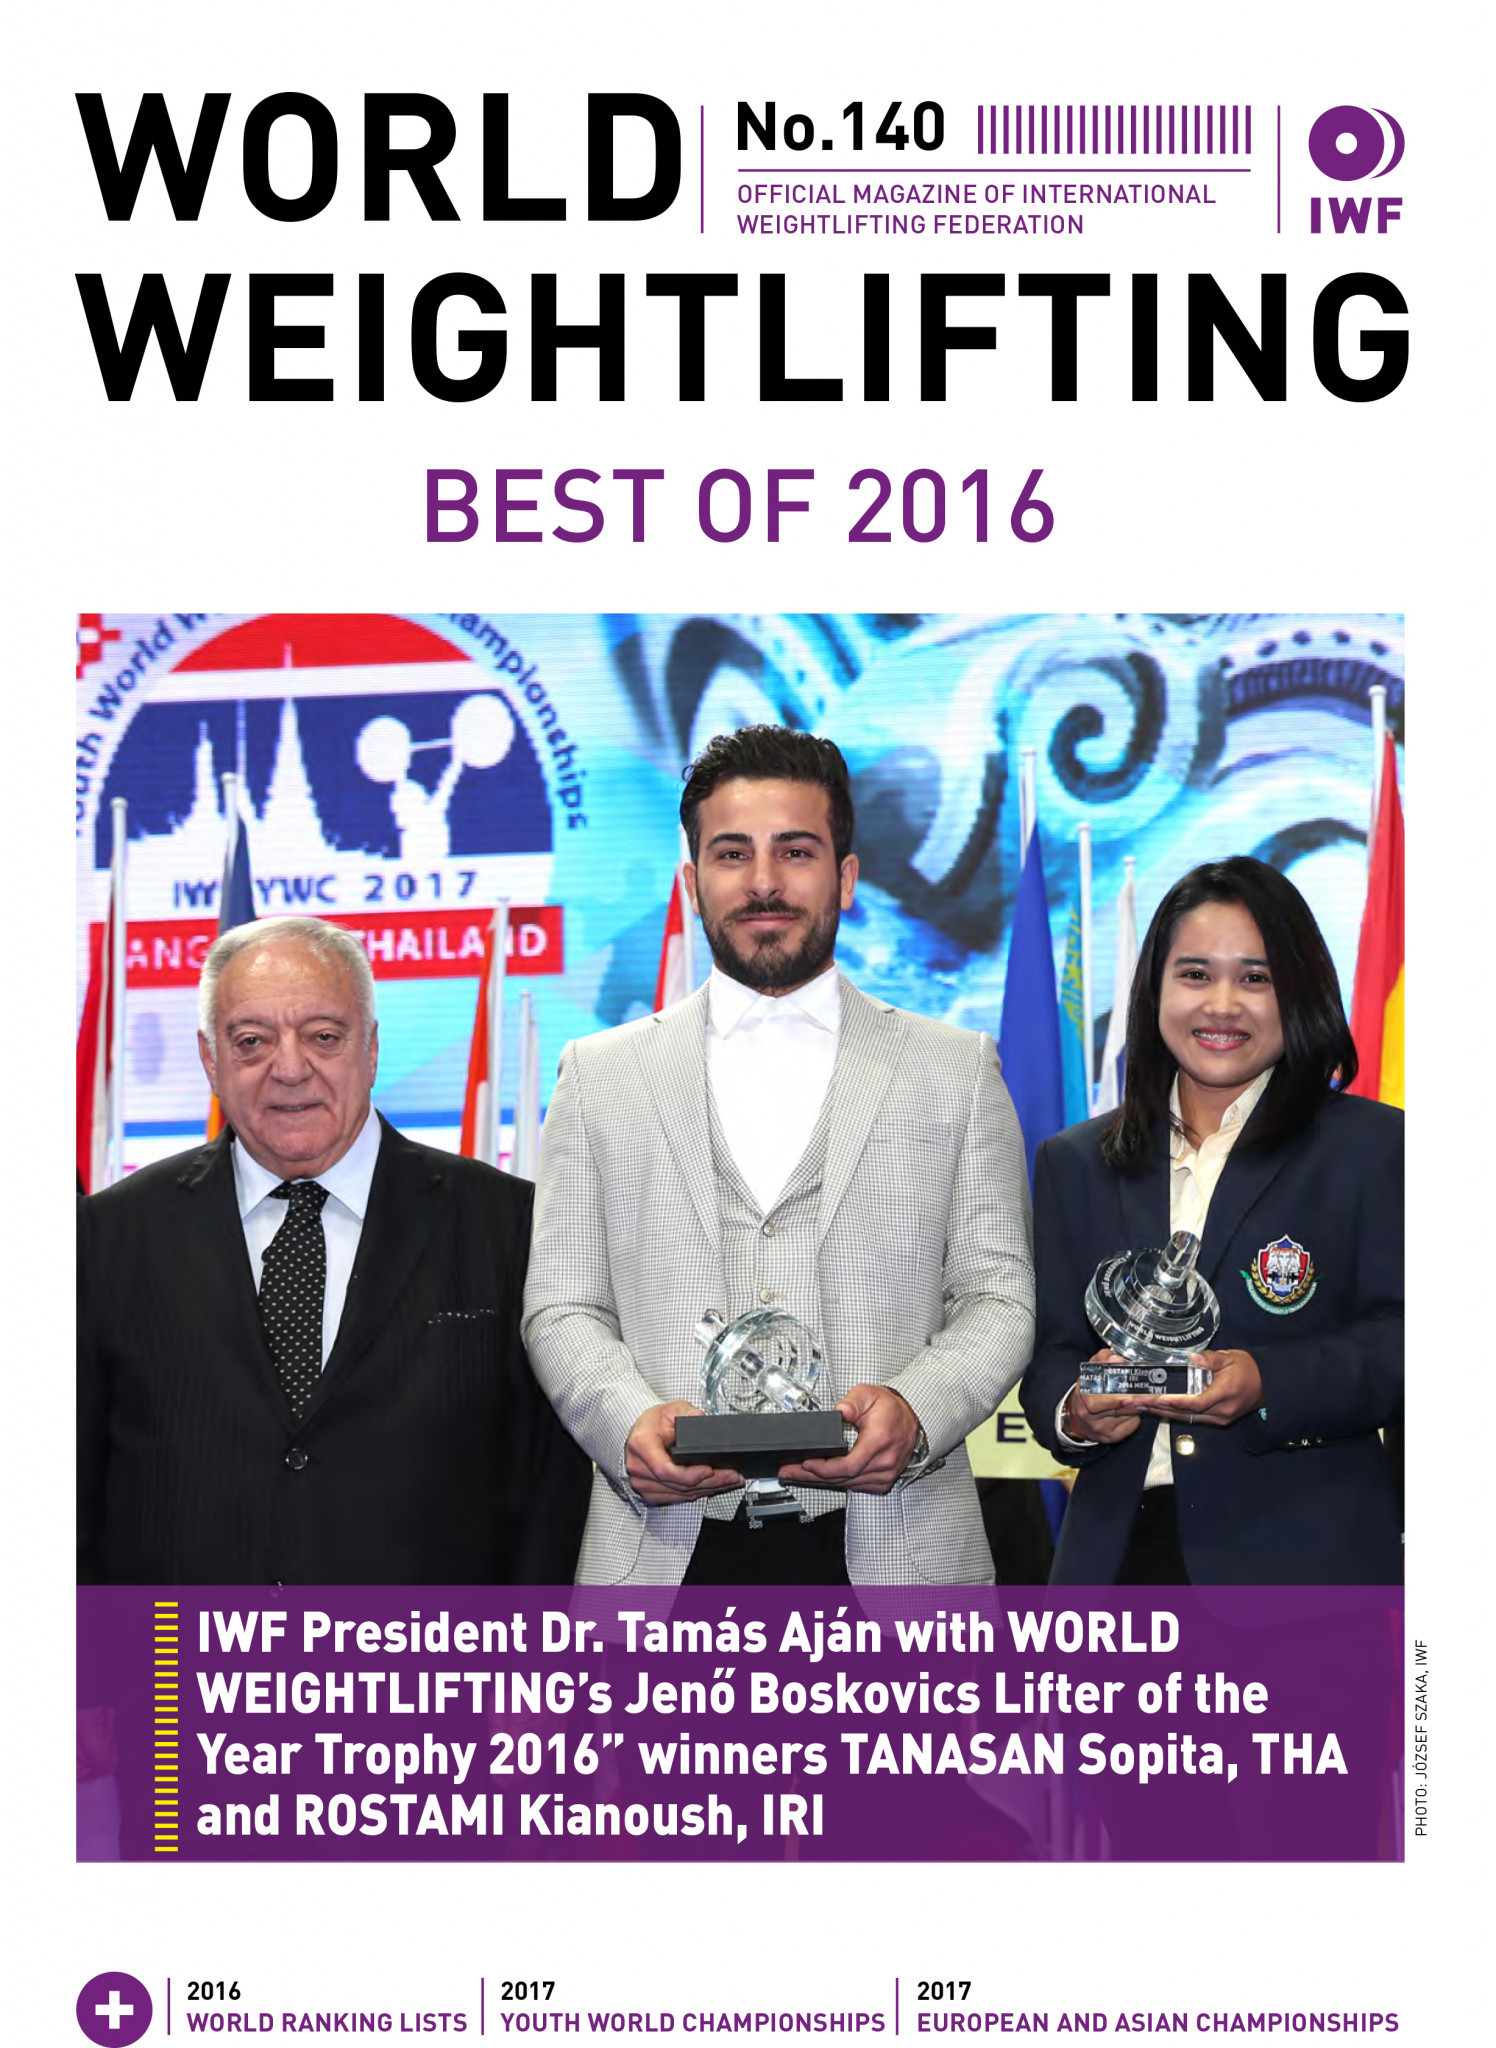 World Weightlifting Magazine No. 140